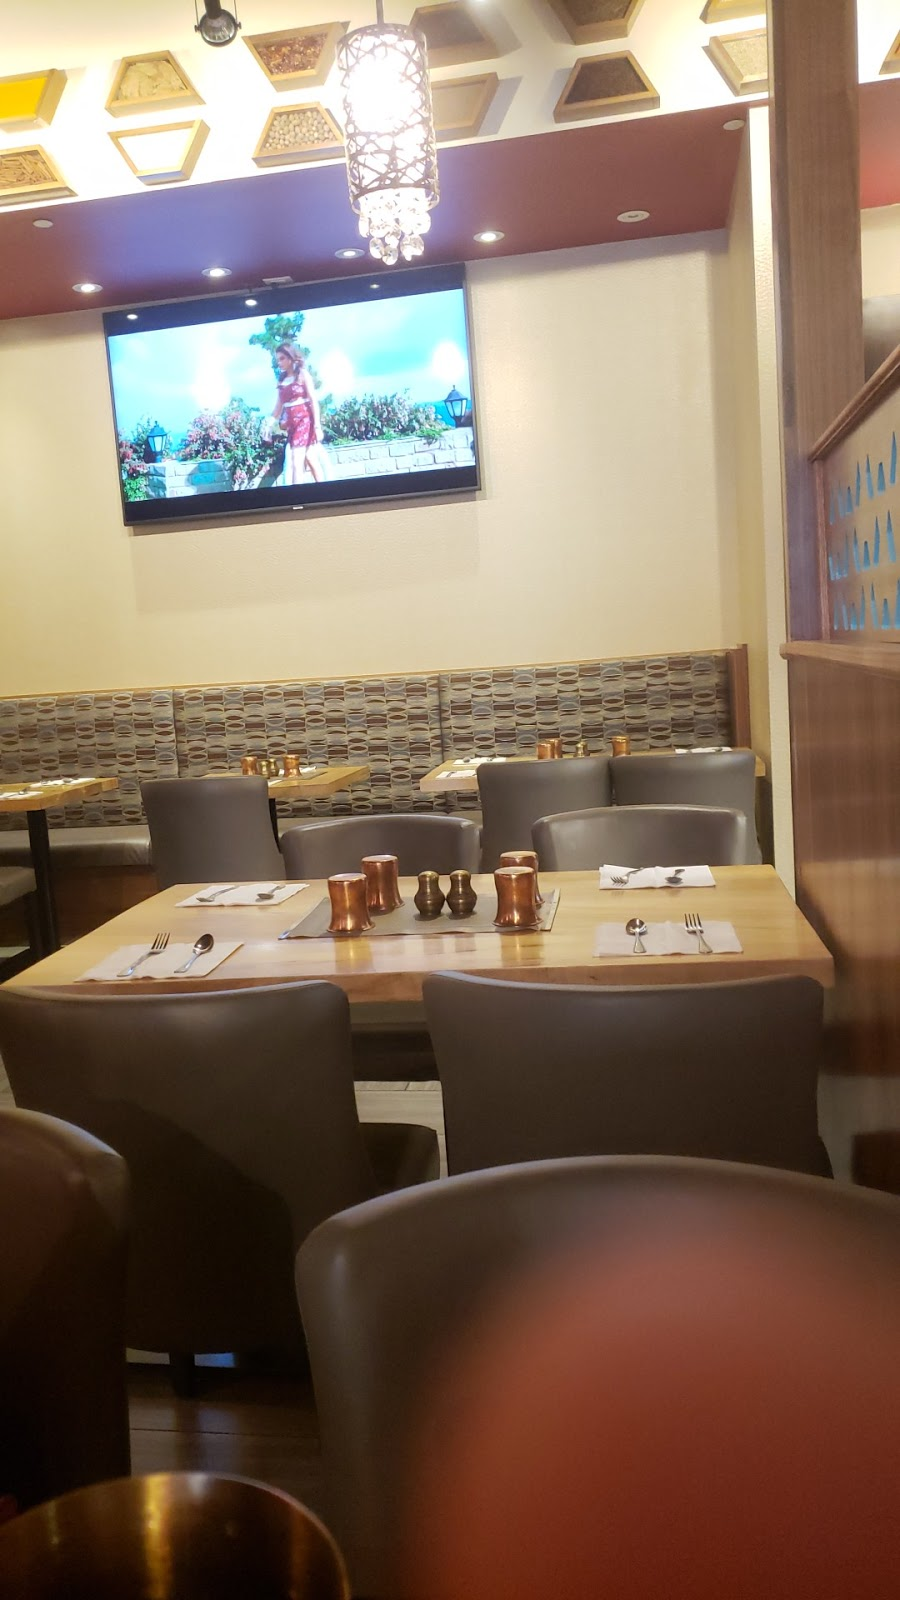 BROTHERS SWEETS & RESTAURANT | restaurant | 50 Lacoste Blvd UNIT #121, Brampton, ON L6P 2K2, Canada | 9057946900 OR +1 905-794-6900